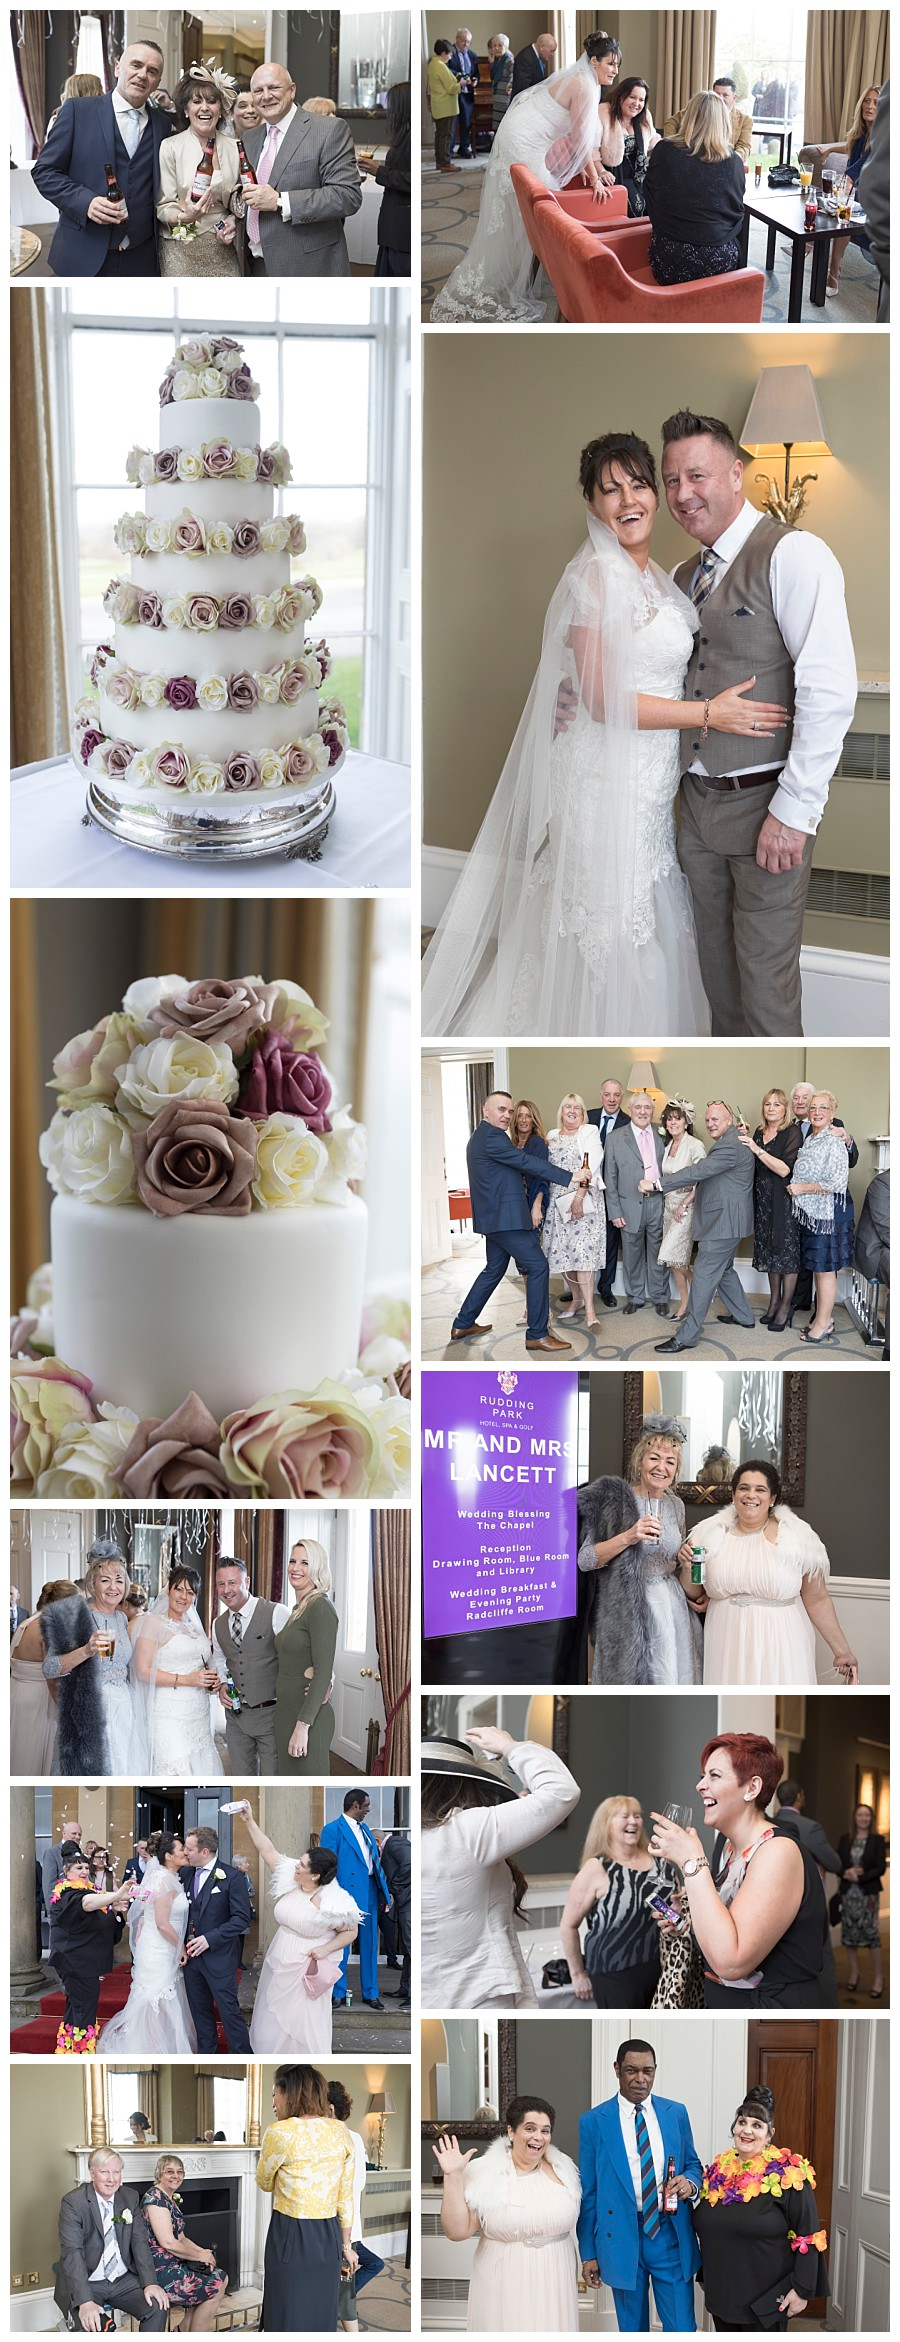 wedding reception rudding park harrogate, harrogate wedding venues, Rudding park Yorkshire